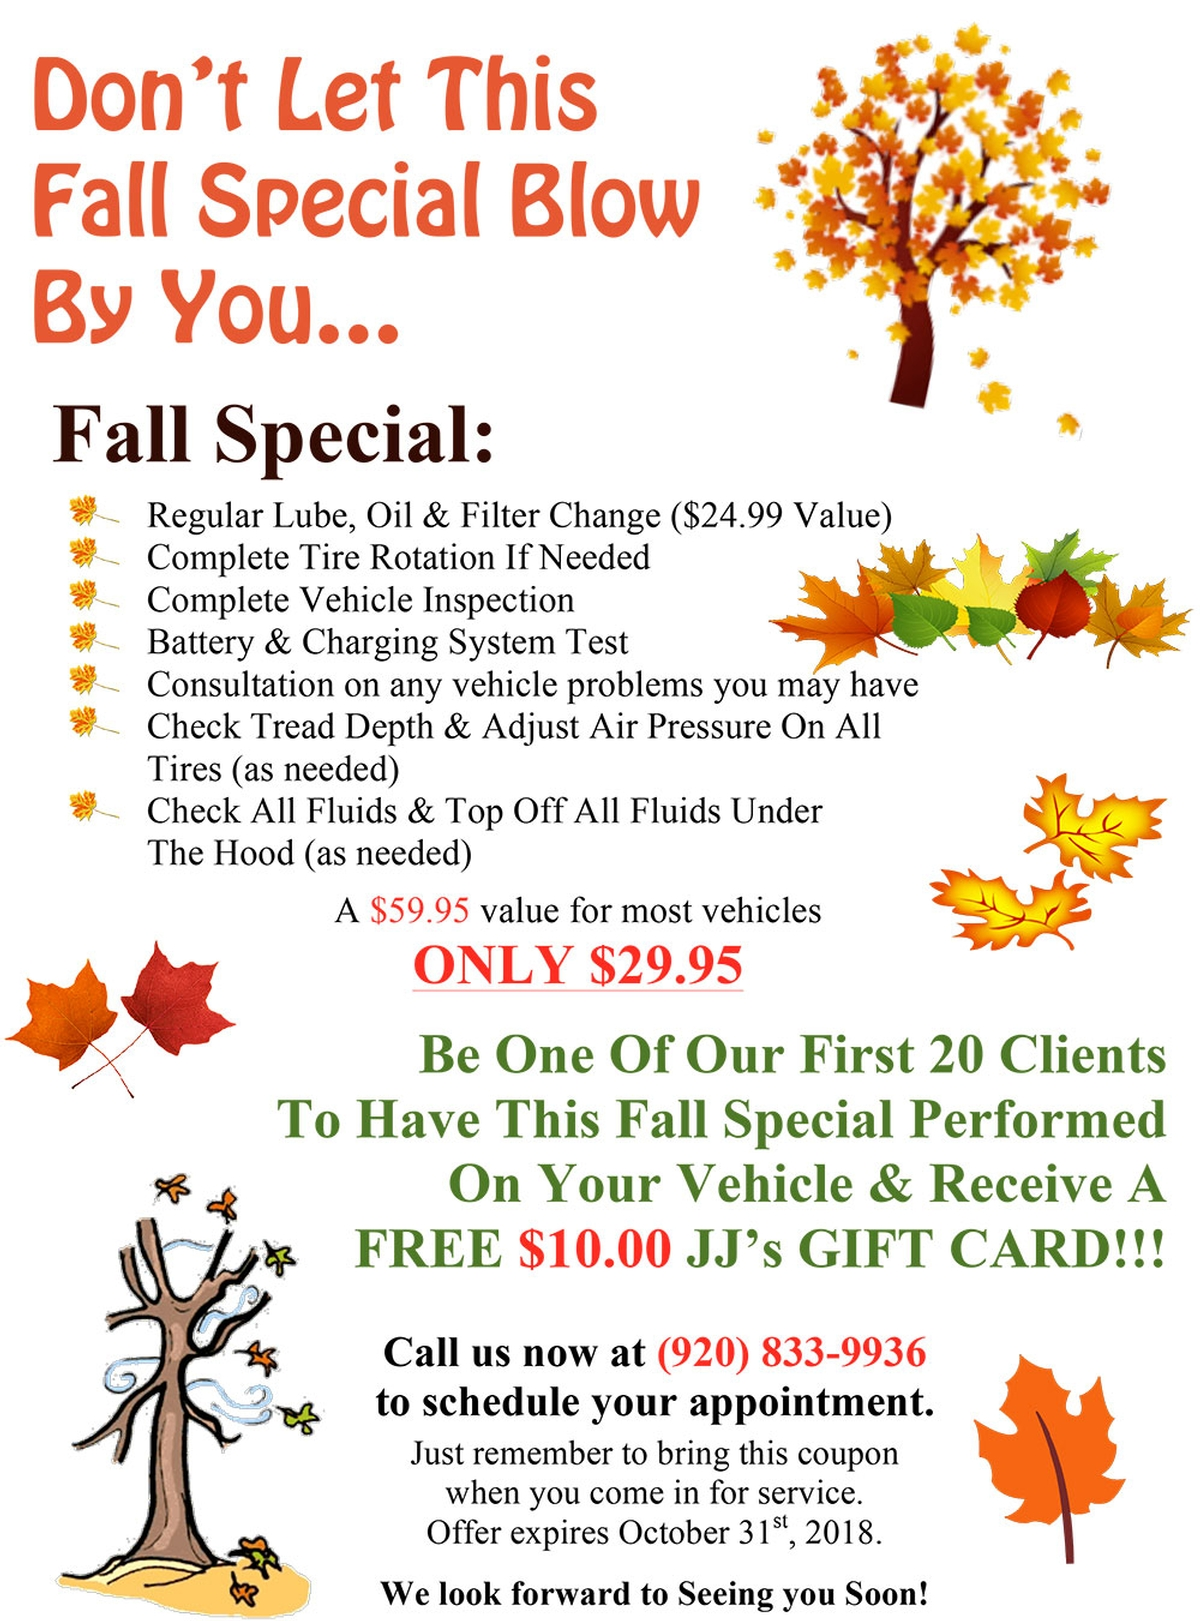 Don't Let This Fall Special Blow By You....